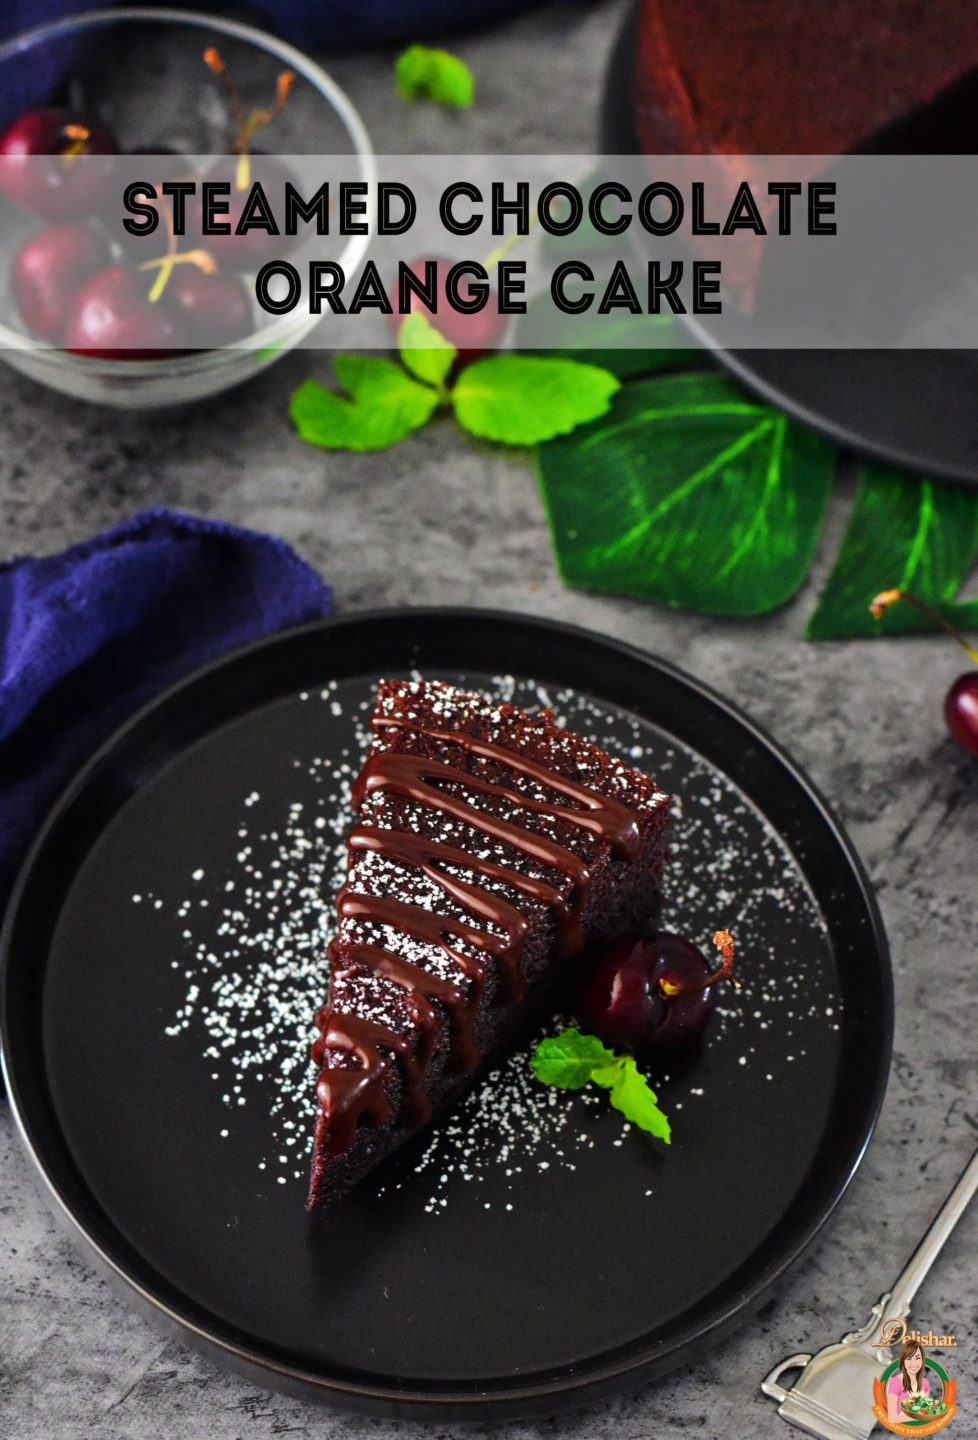 Steamed Moist Orange Chocolate Cake | Delishar - Singapore Cooking Blog